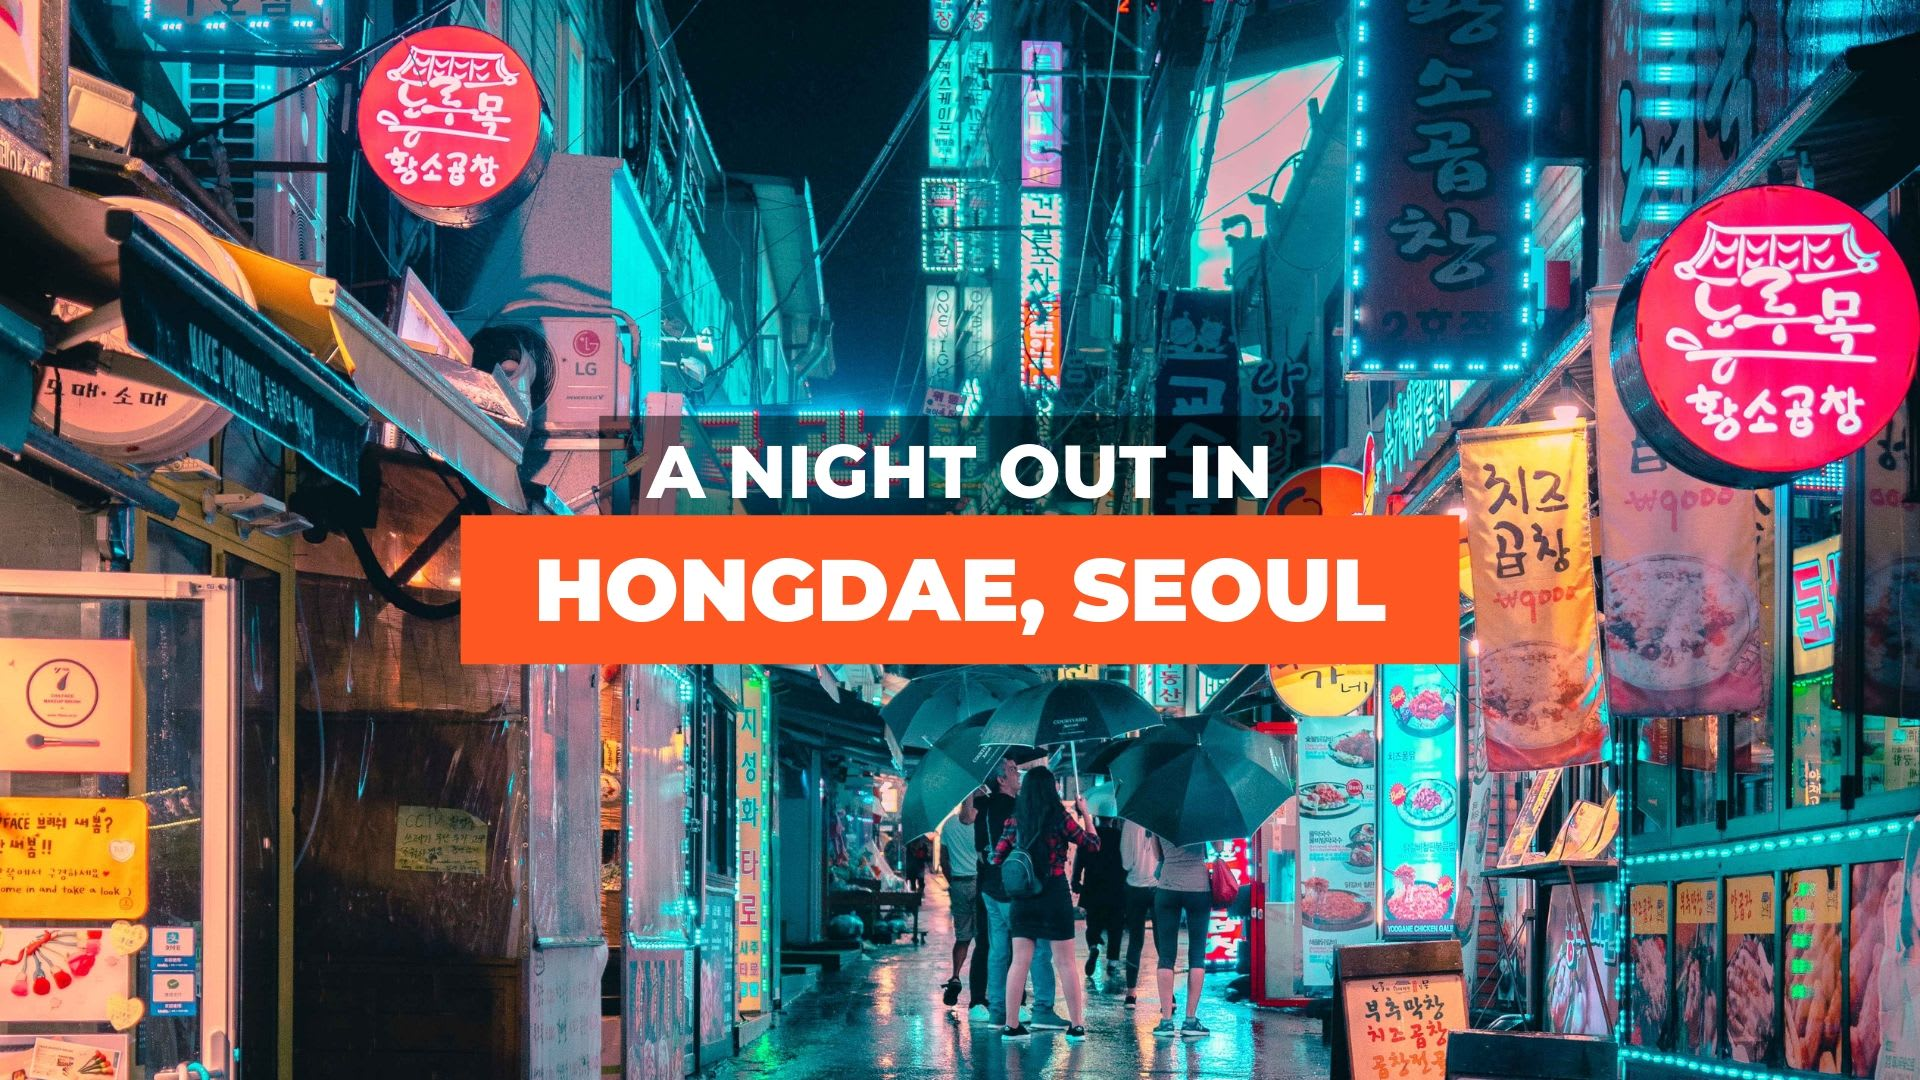 hongdae-night-out-featured-image